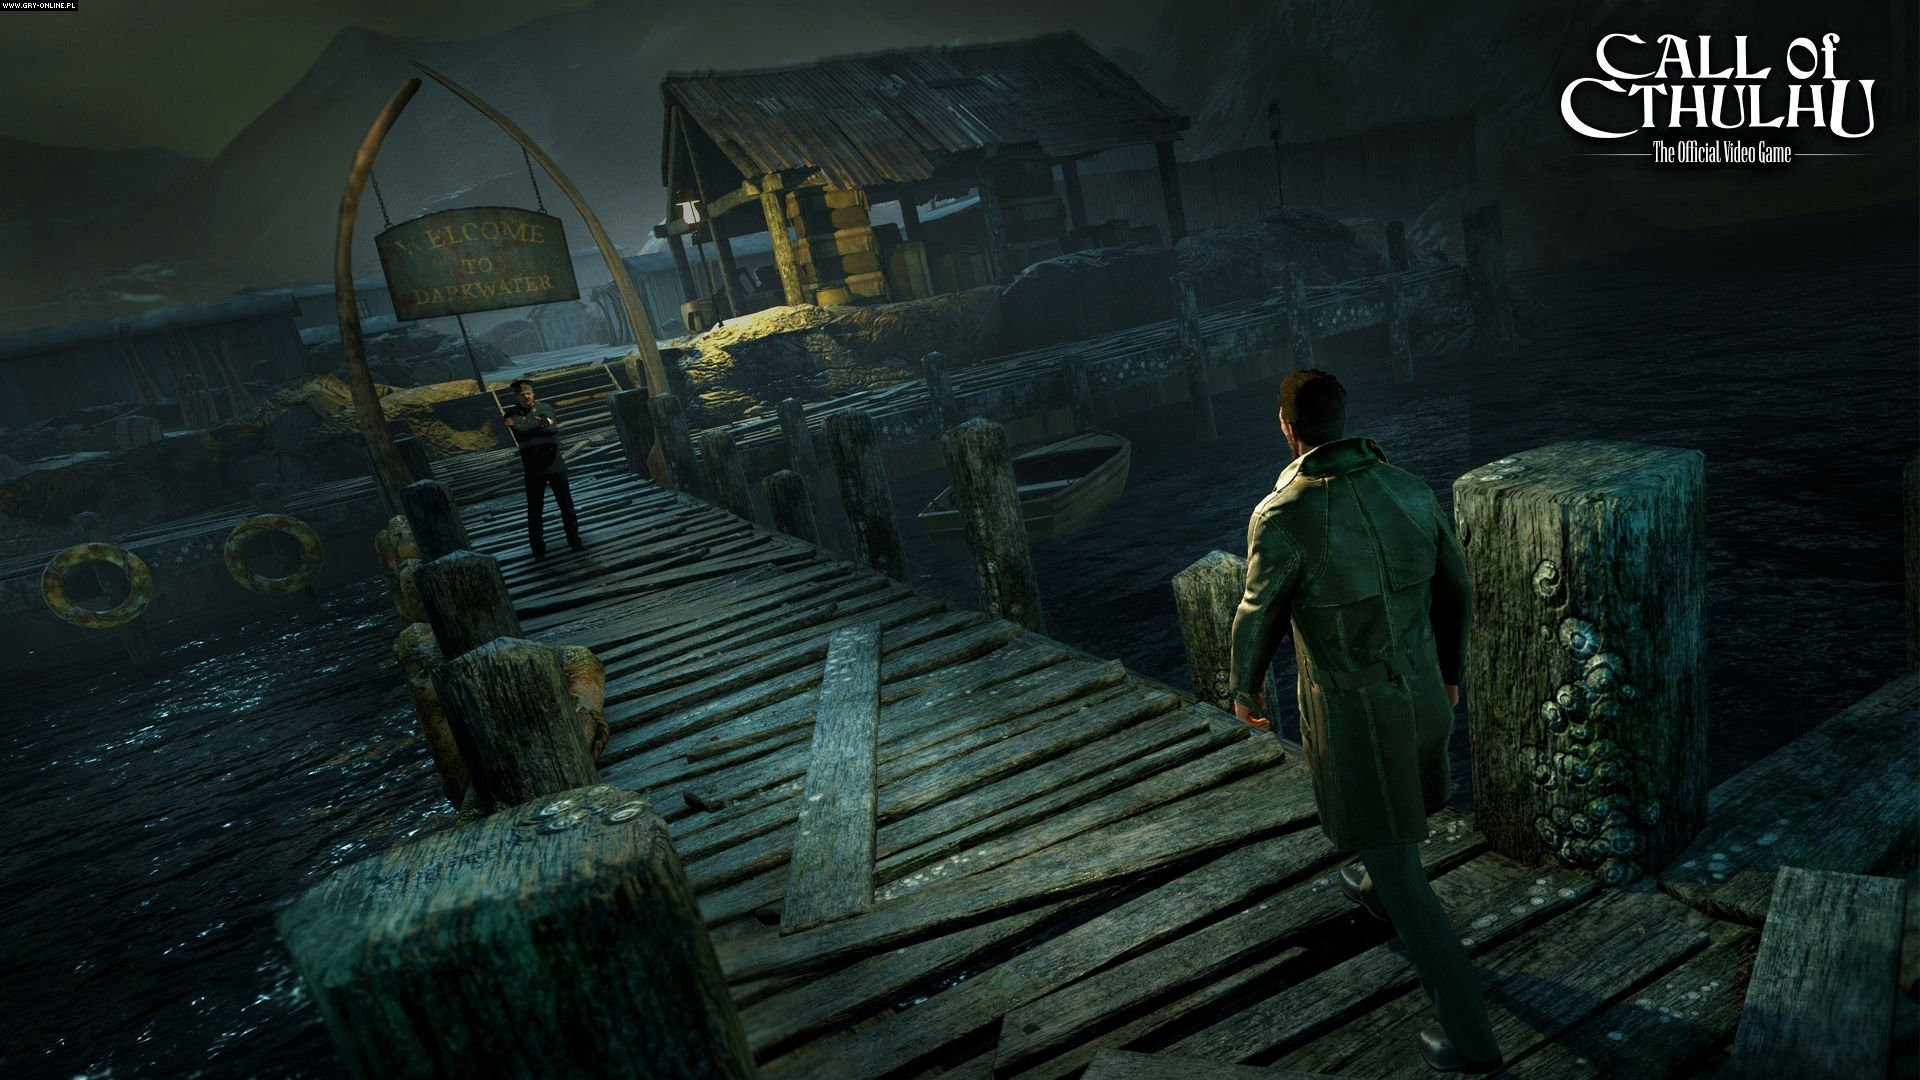 Call of Cthulhu PC Games Image 22/30, Cyanide Studio, Focus Home Interactive